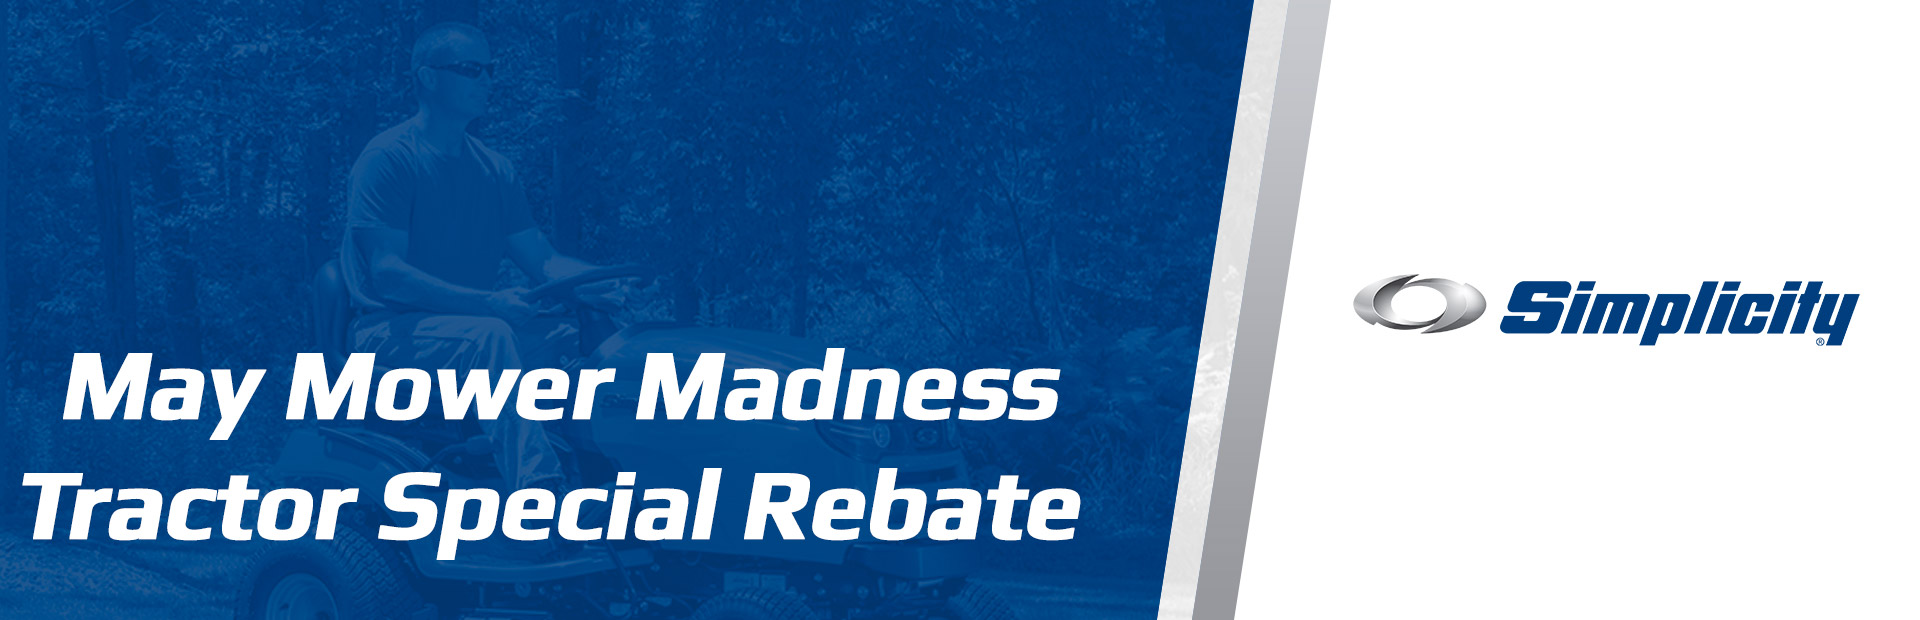 Simplicity: May Mower Madness Tractor Special Rebate